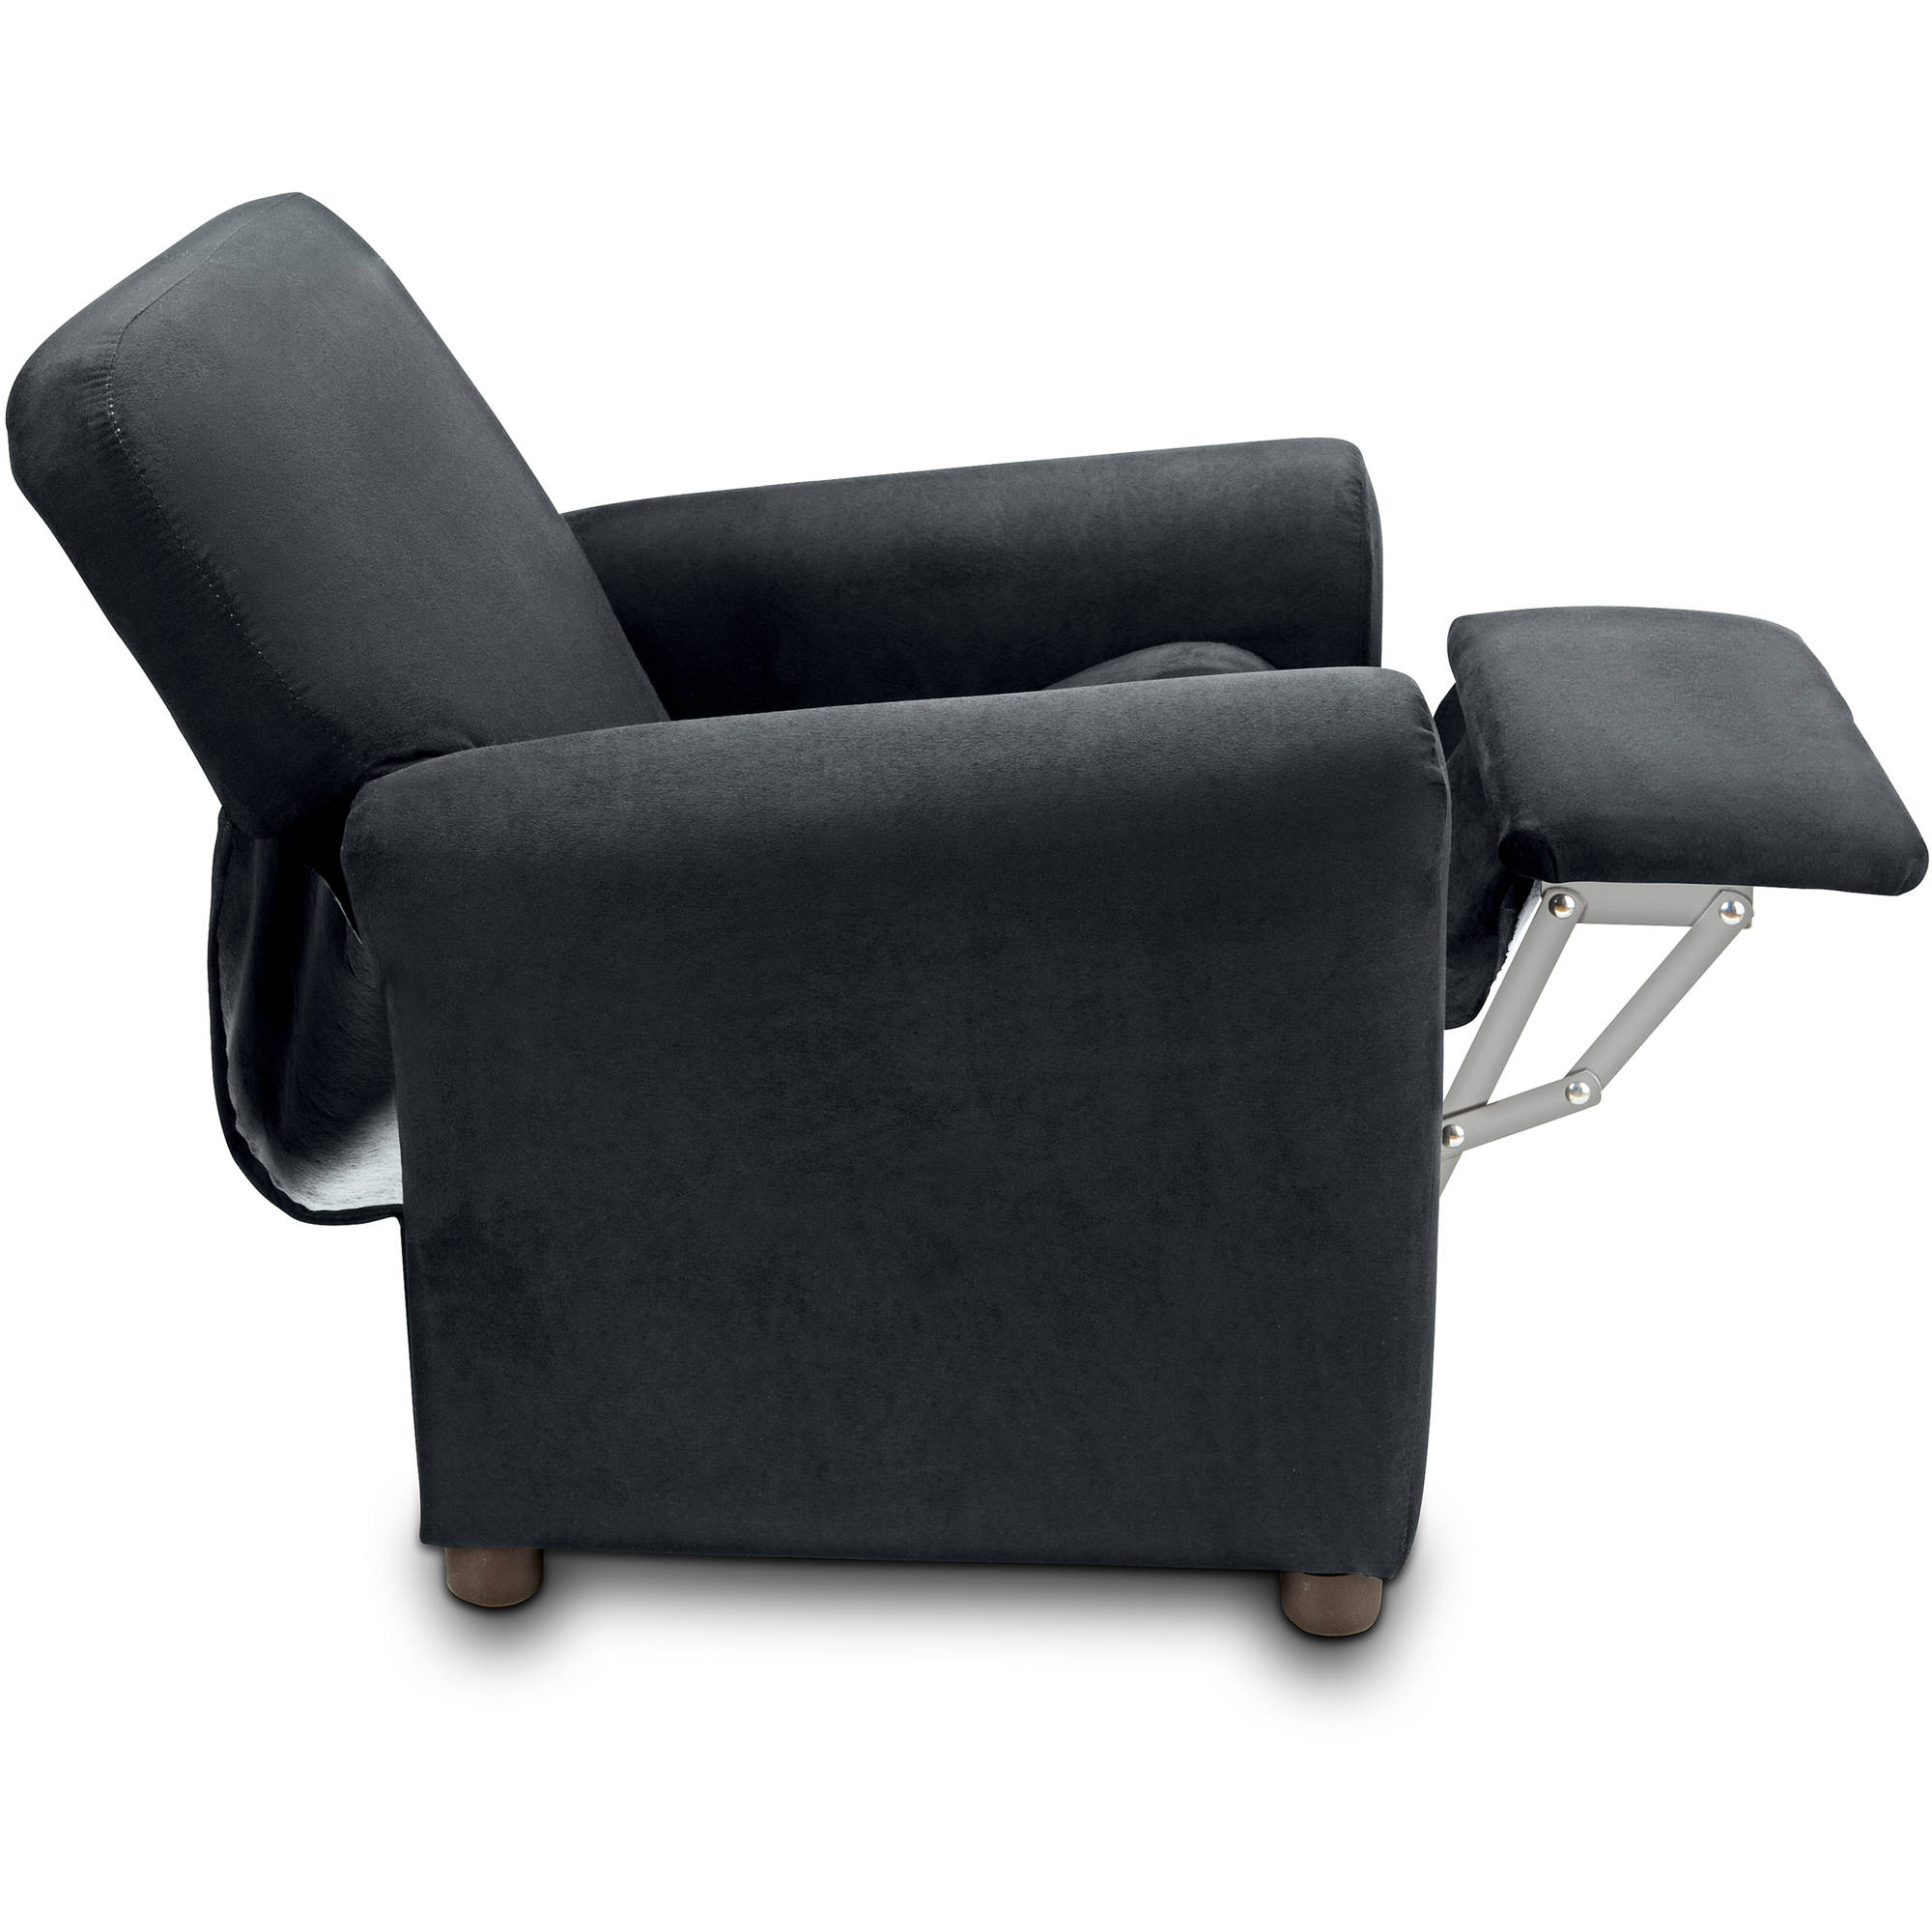 crew furniture urban child relaxing recliner kids gaming chair black 94338649666 ebay. Black Bedroom Furniture Sets. Home Design Ideas